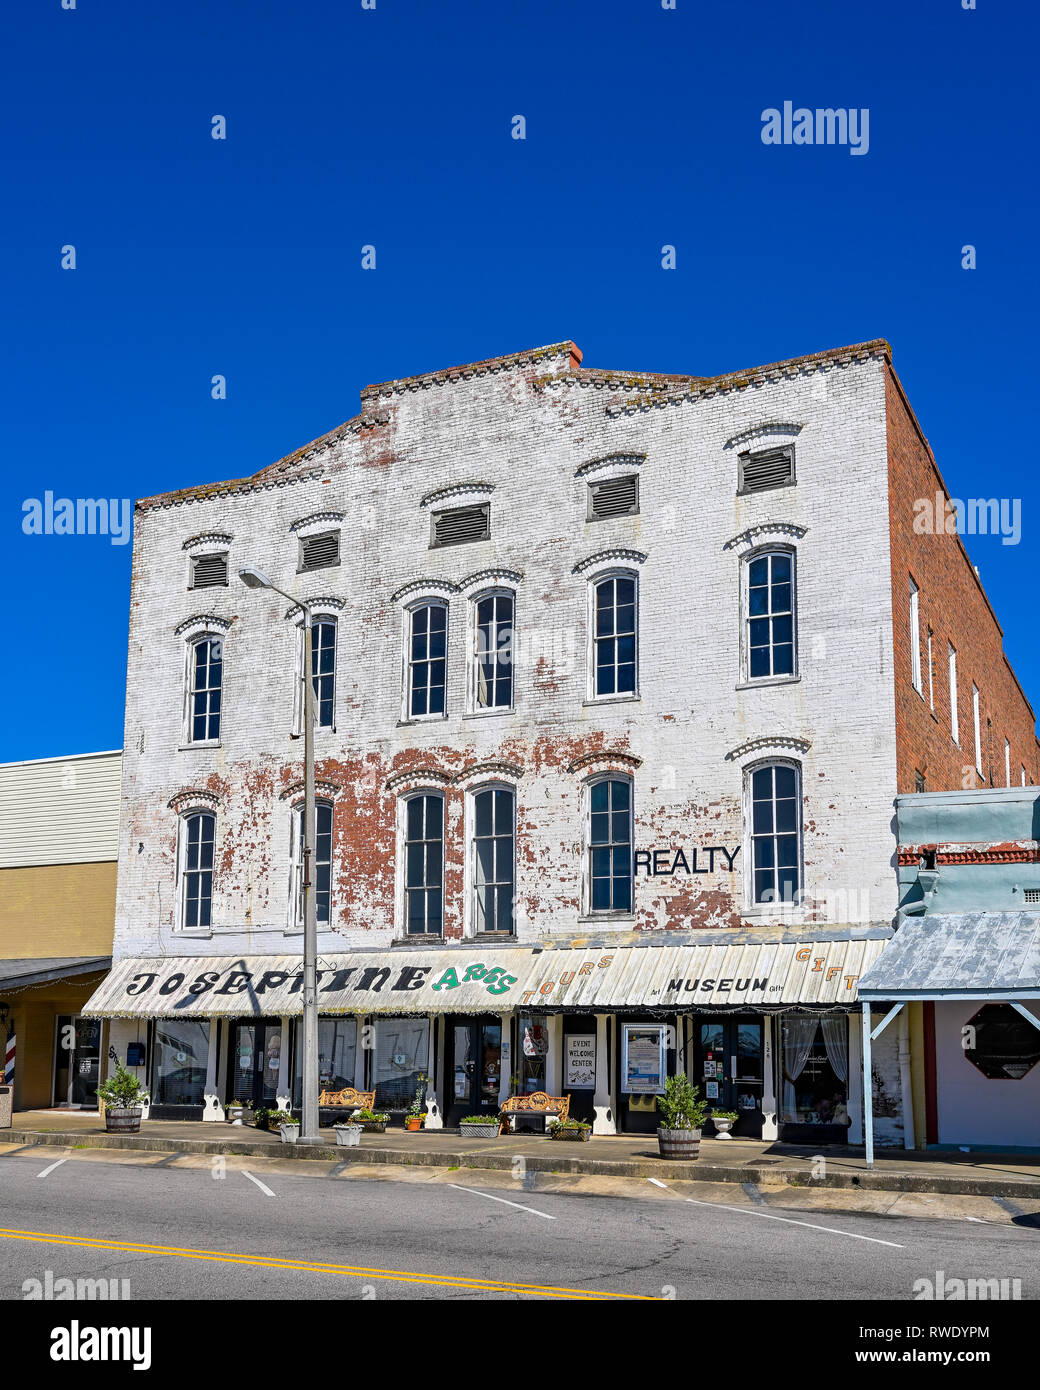 Front exterior entrance showing weathered brick of the old, vintage Josephine Hotel that has now been repurposed, in small town Union Springs AL, USA. - Stock Image